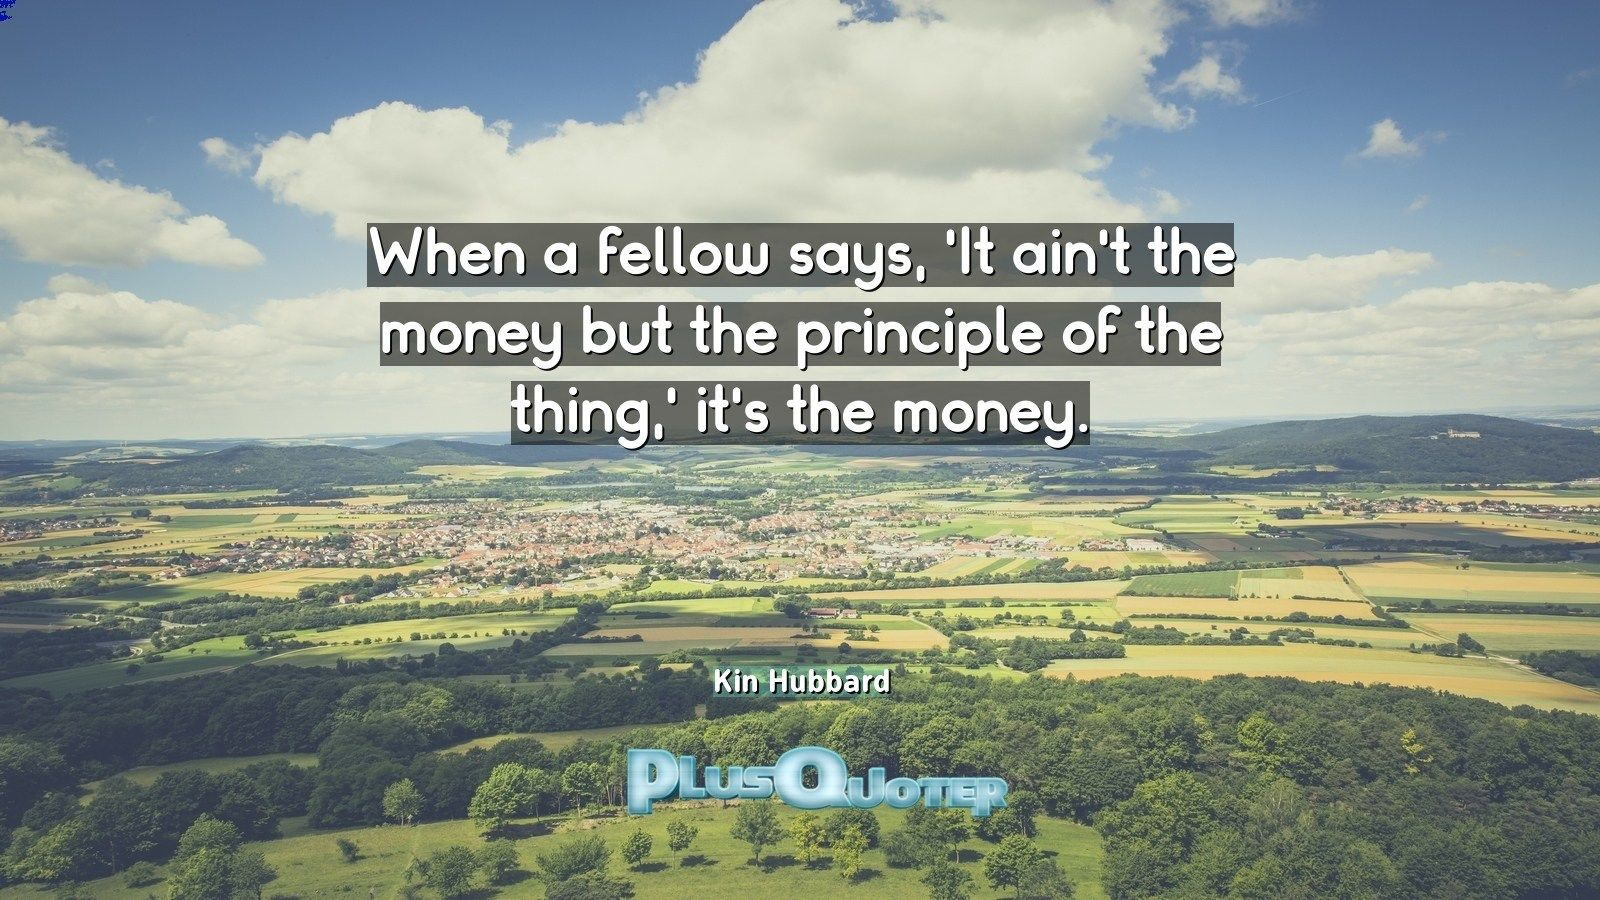 """""""When a fellow says, 'It ain't the money but the principle of the thing,' it's the money.""""- Kin Hubbard. Kin Hubbard � biography: Author Profession: Journalist Nationality: American Born: September 1, 1868 Died: December 26, 1930 Wikipedia : About Kin Hubbard Amazone : Kin Hubbard  #Fellow #Money #Principle #Says #Thing"""